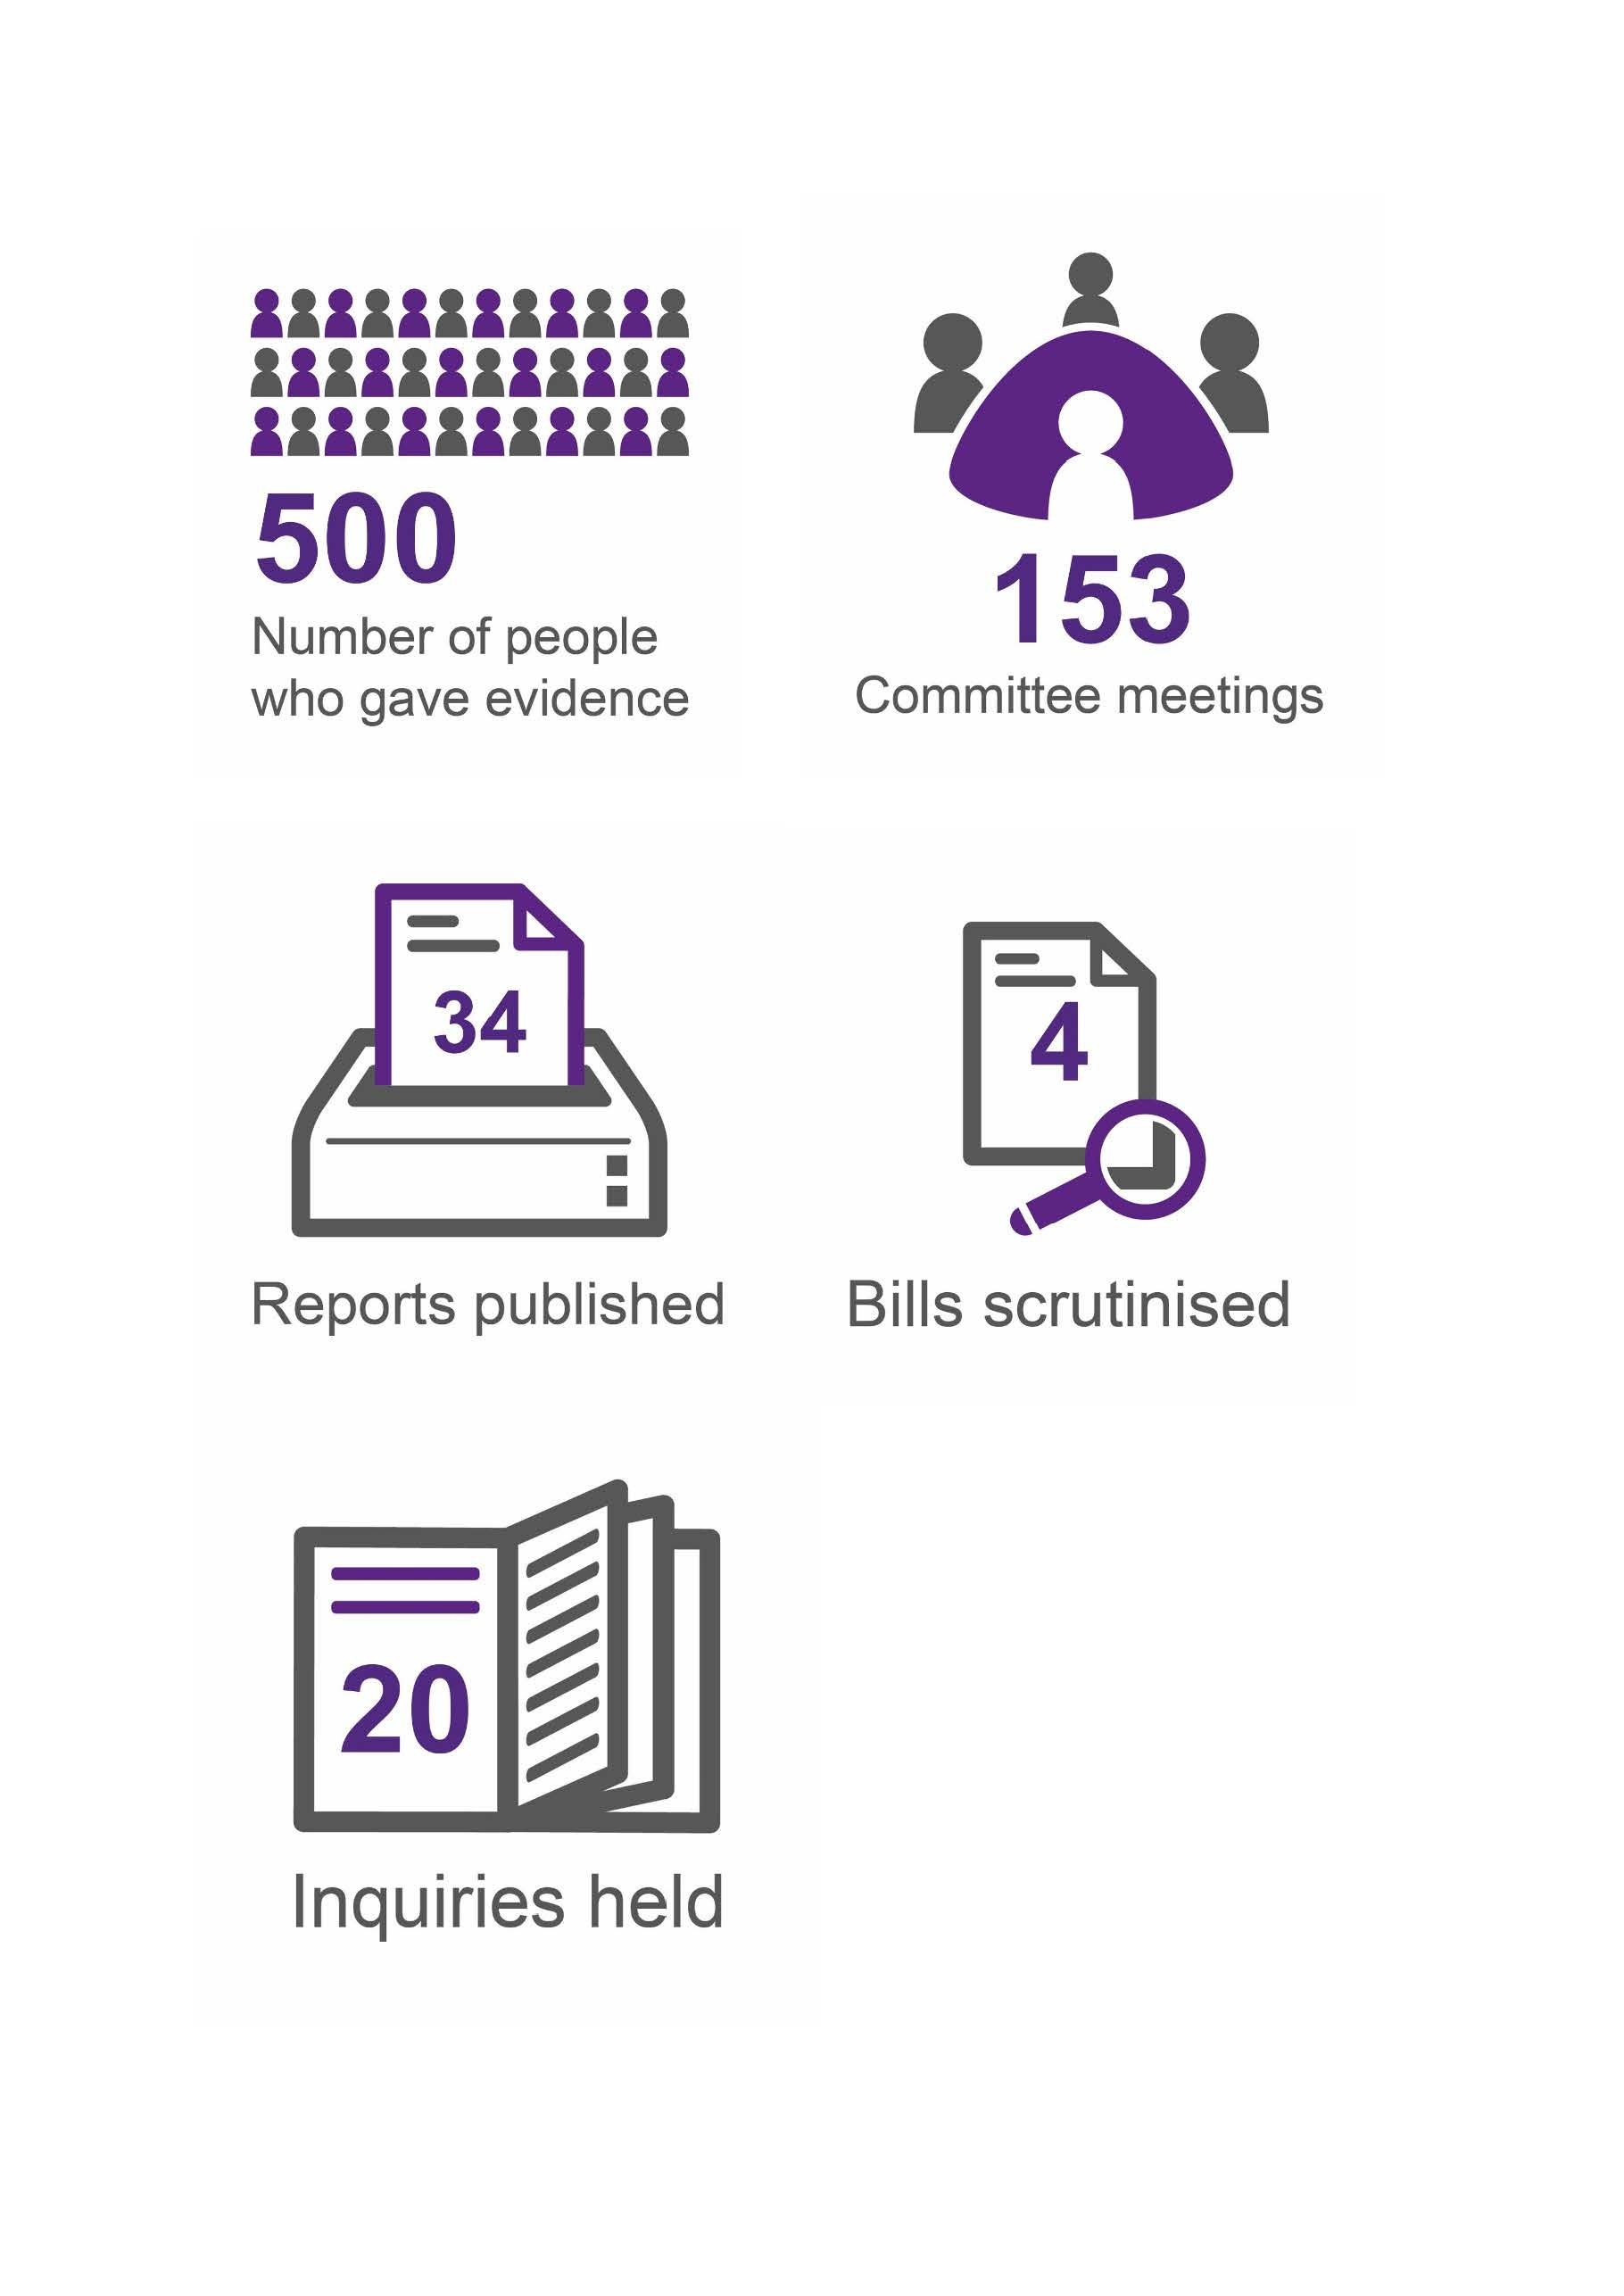 Image shows a number of infographics setting out key statistics for the Education and Skills Committee. This includes the fact that it held 153 committee meetings and heard evidence from 500 people this Parliamentary session. The Committee published 34 reports, scrutinised 4 Bills and held 20 Inquiries.